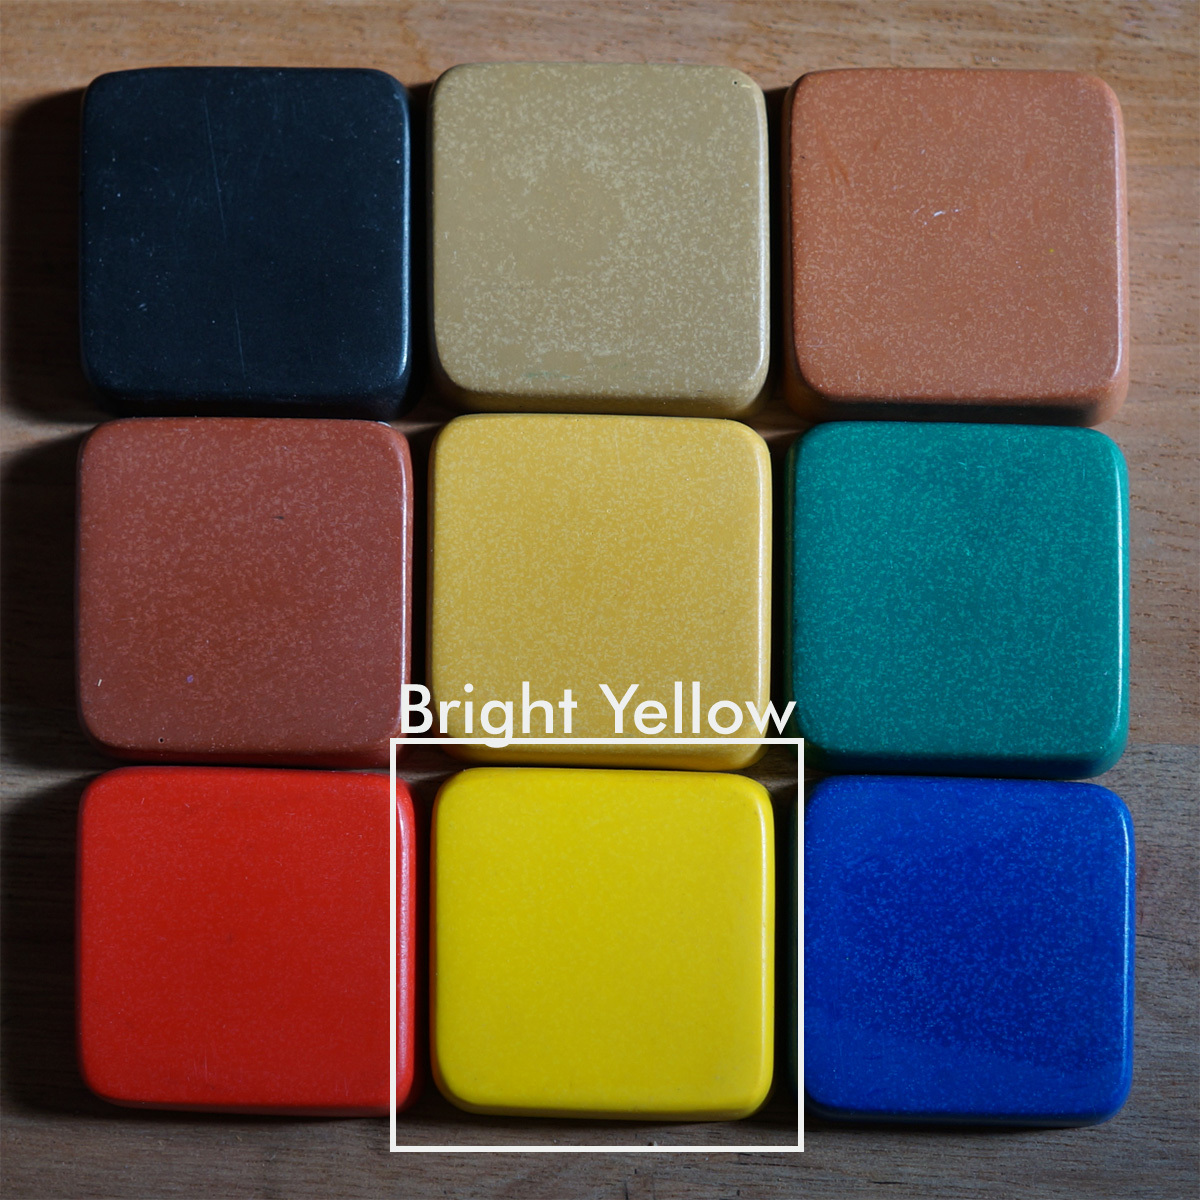 PIGMENT BRIGHT YELLOW 200g(着色剤:黄 200g) - 画像2